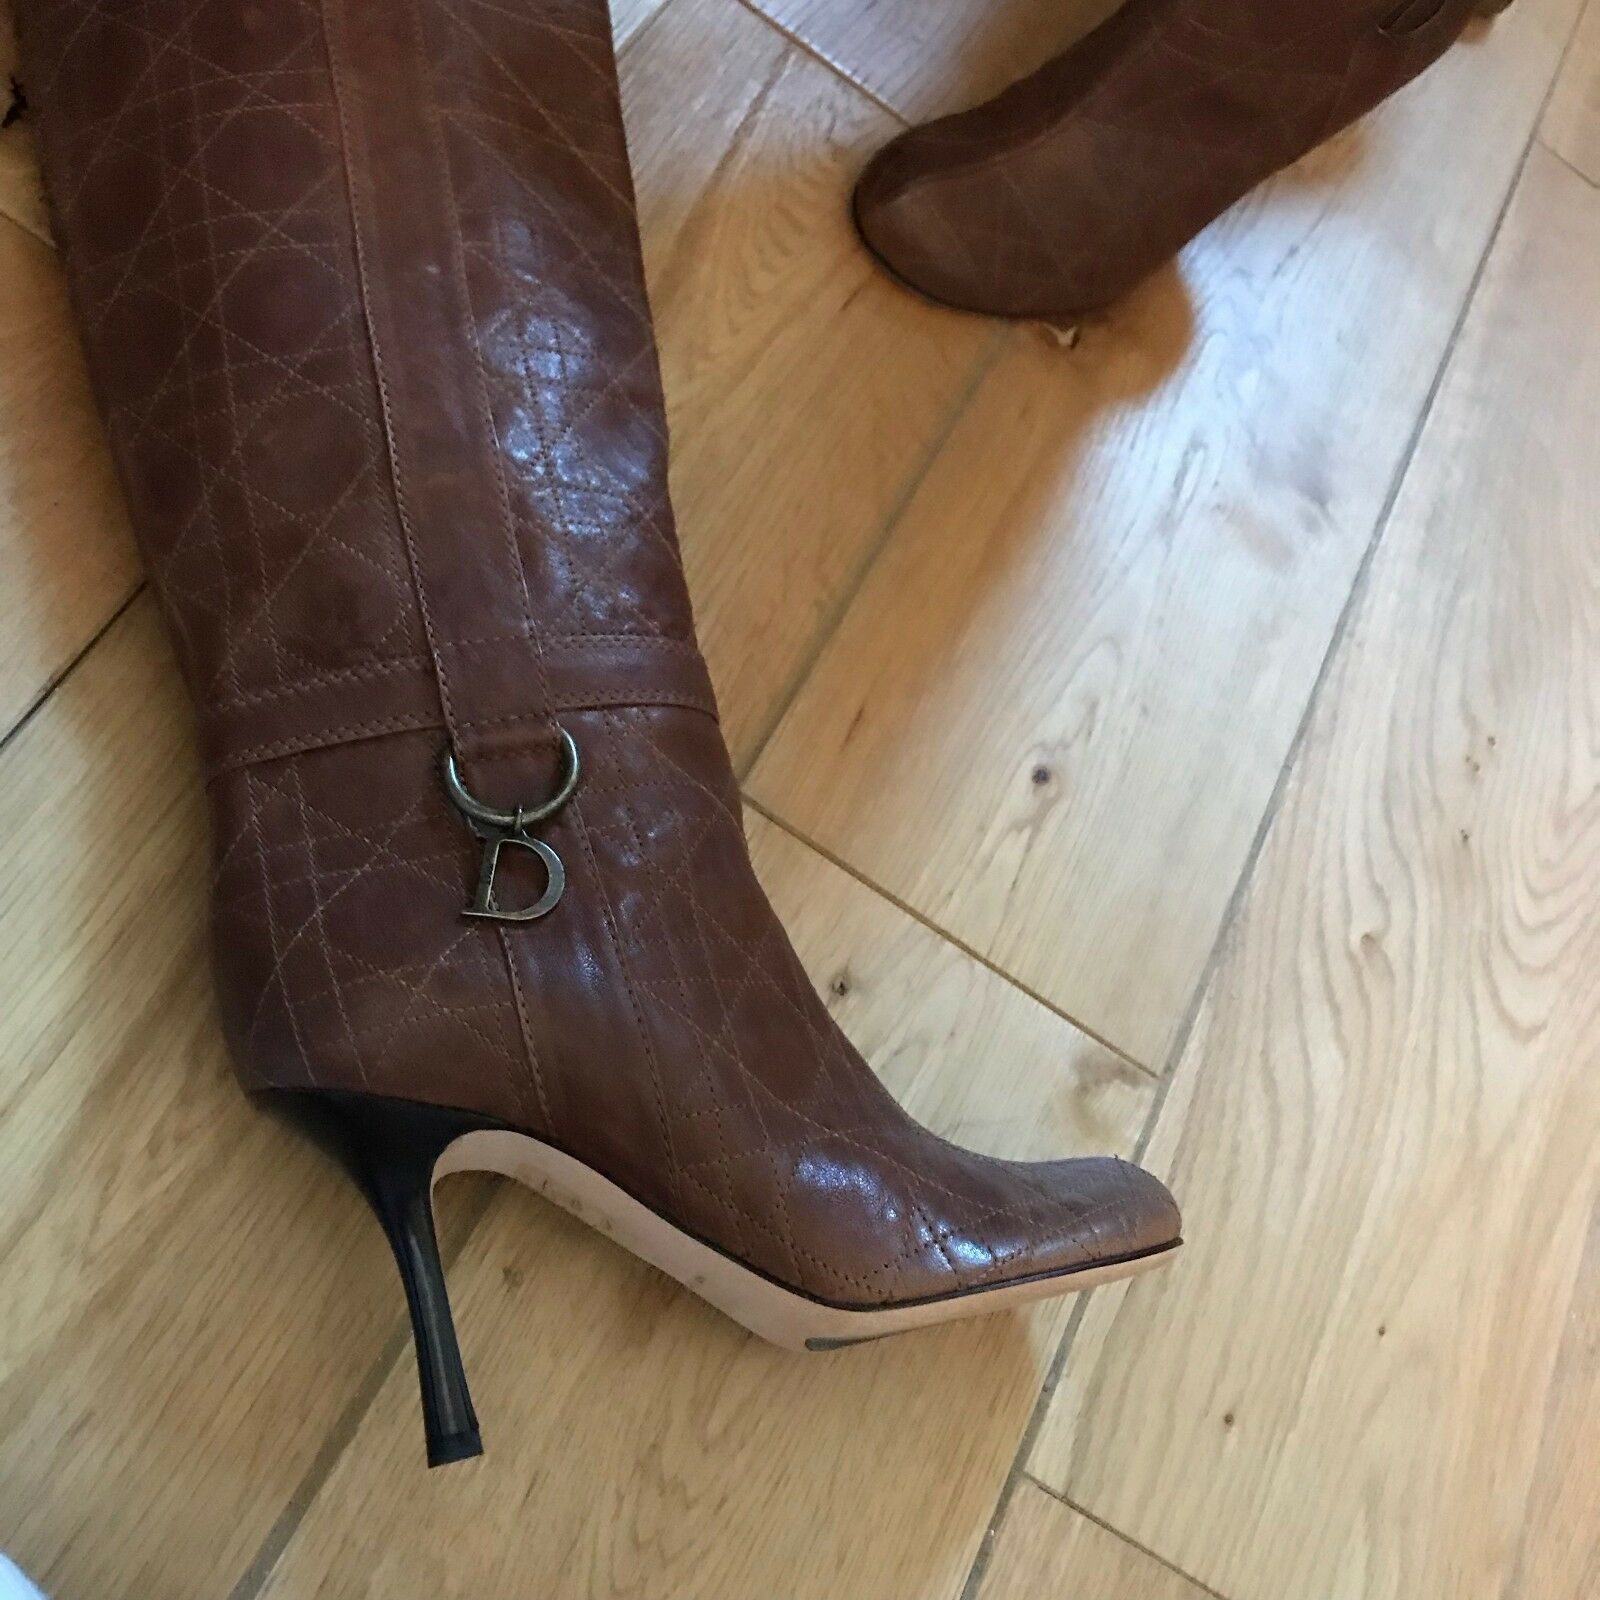 Dior brown knee boots size 35, high heels stitched leather with box